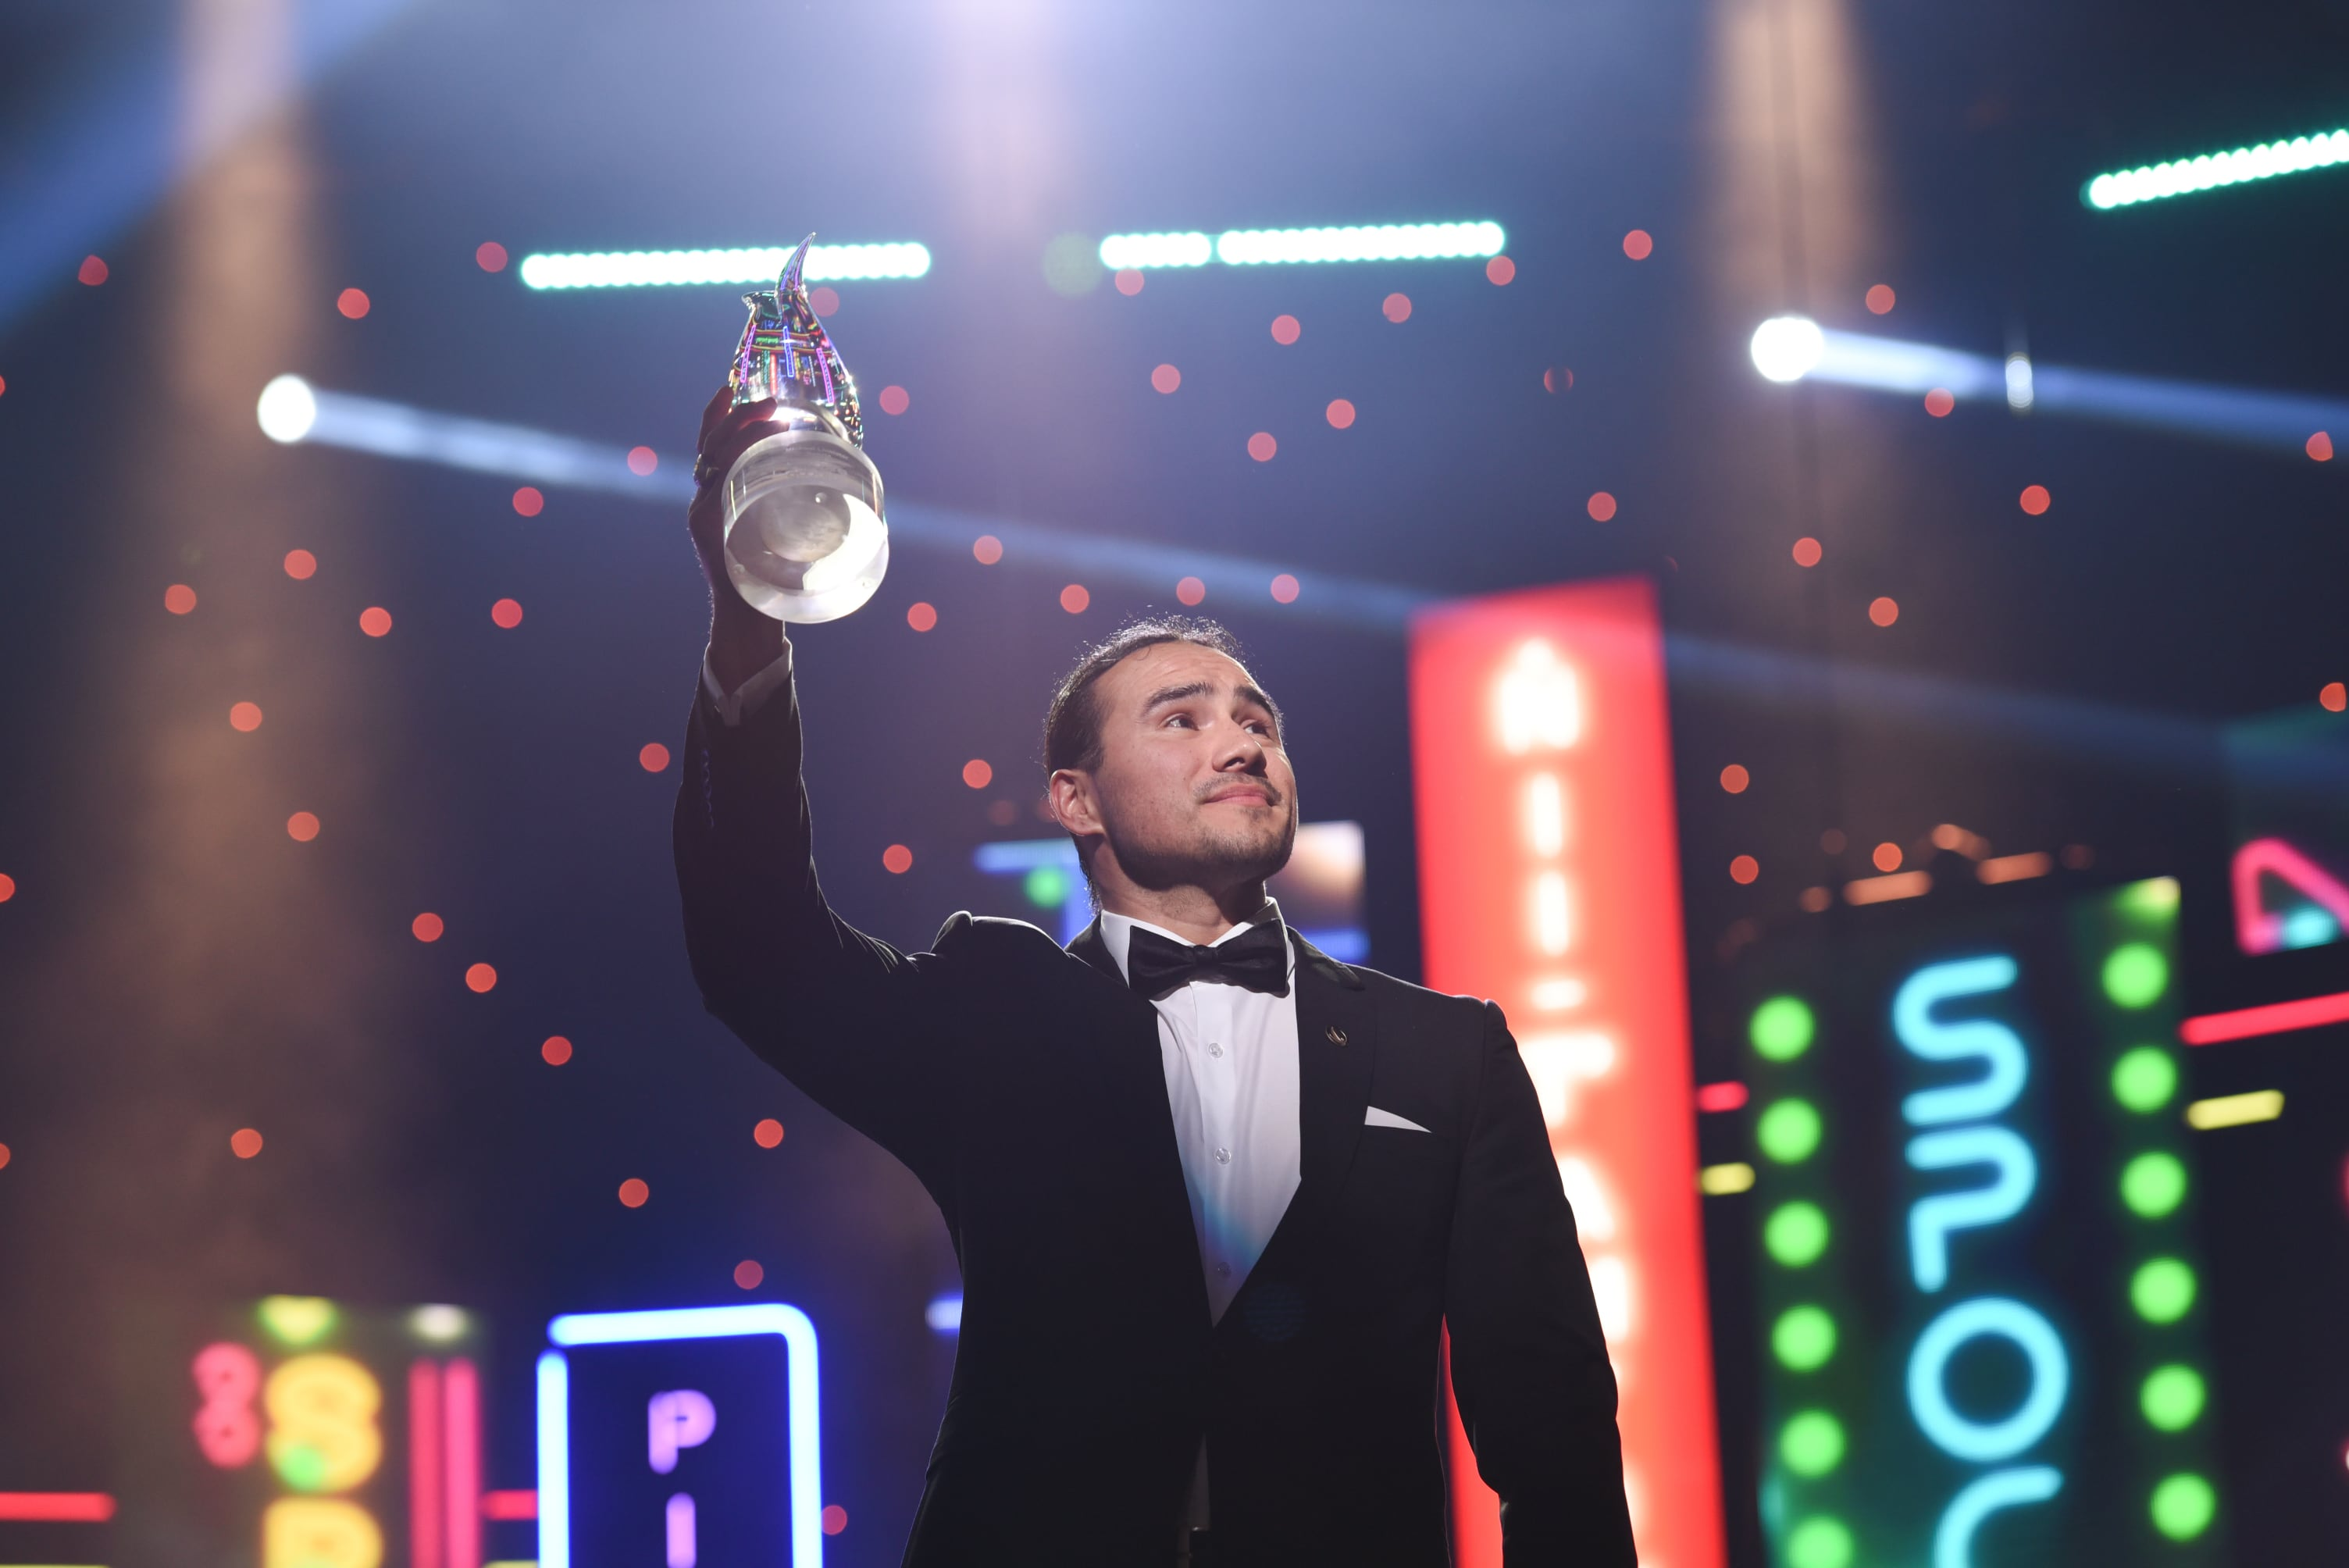 2018 Indspire Awards Will Air in June on CBC and APTN